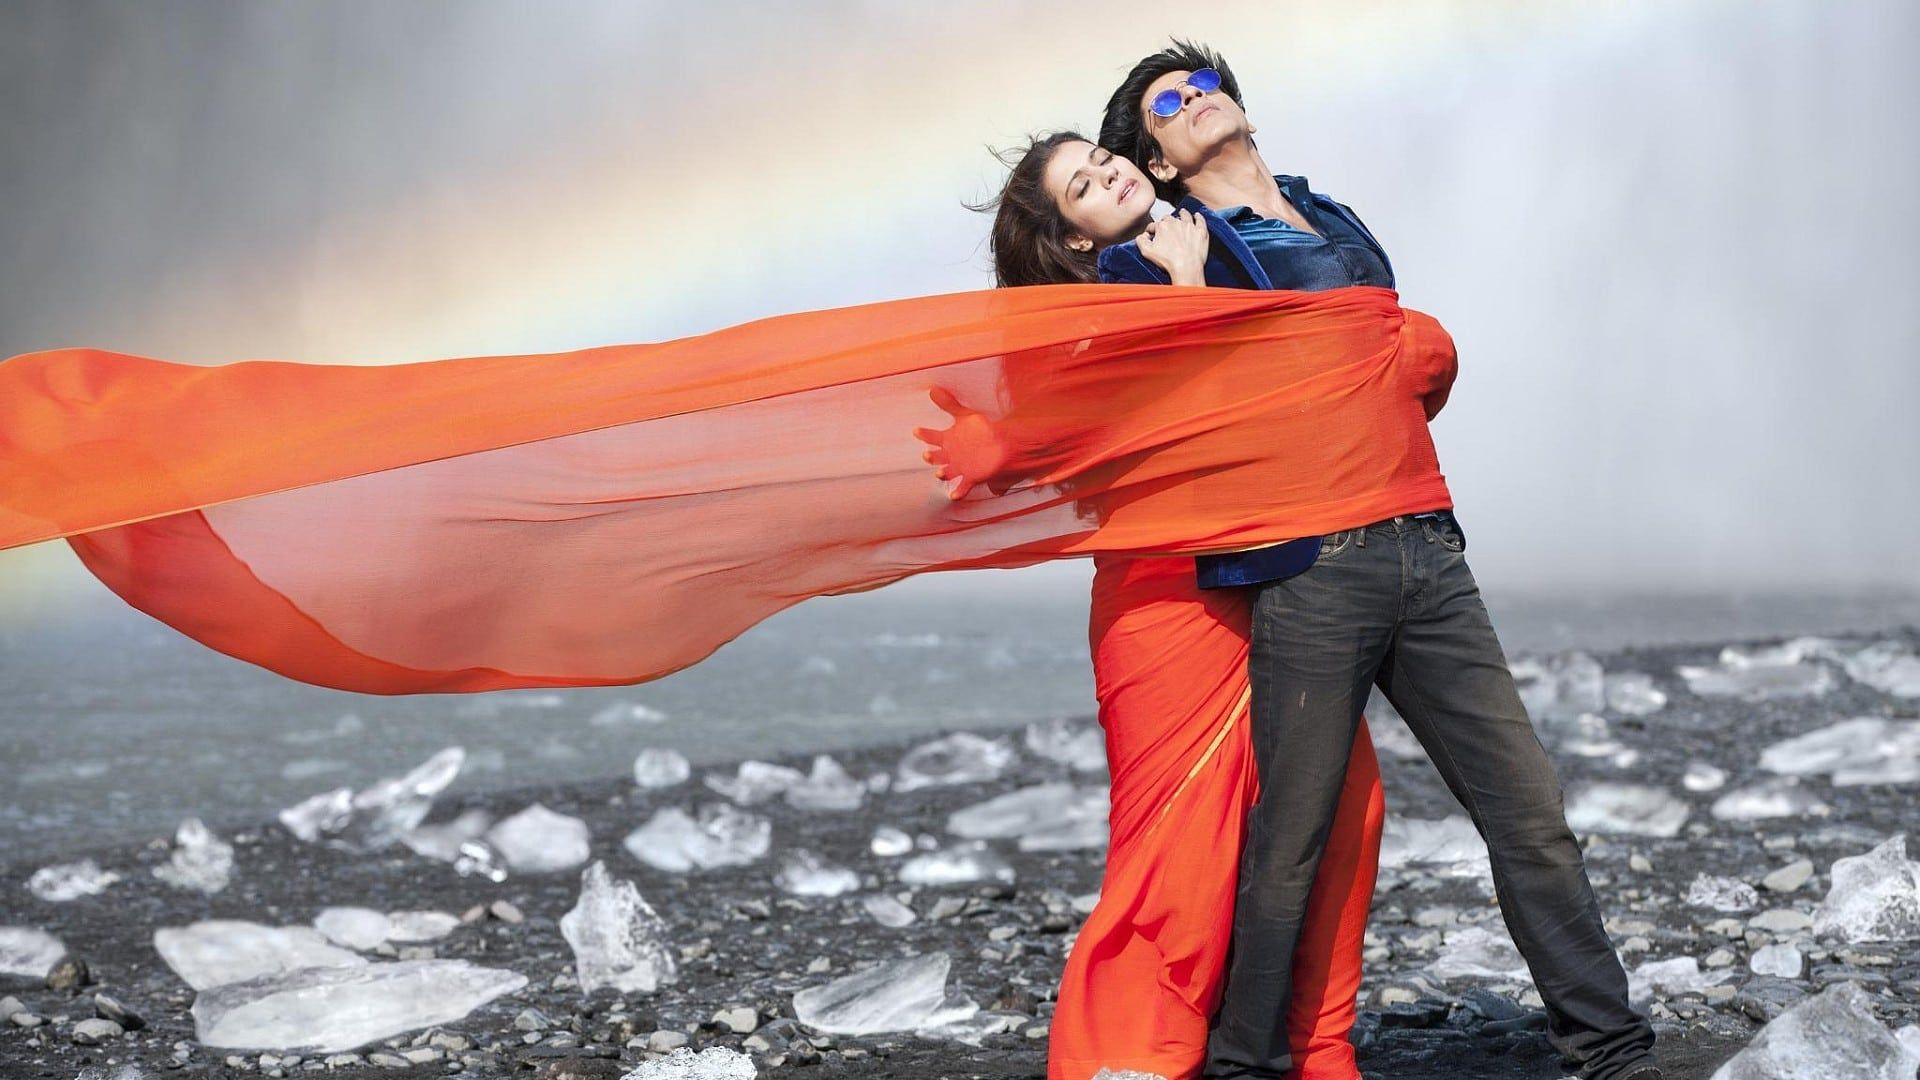 Dilwale 2015 720p 1080p Watch Online Free Download Raj Is A Mafia Member One Day He Meet A Girl Meera While Chasing B Dilwale 2015 Songs Bollywood Songs